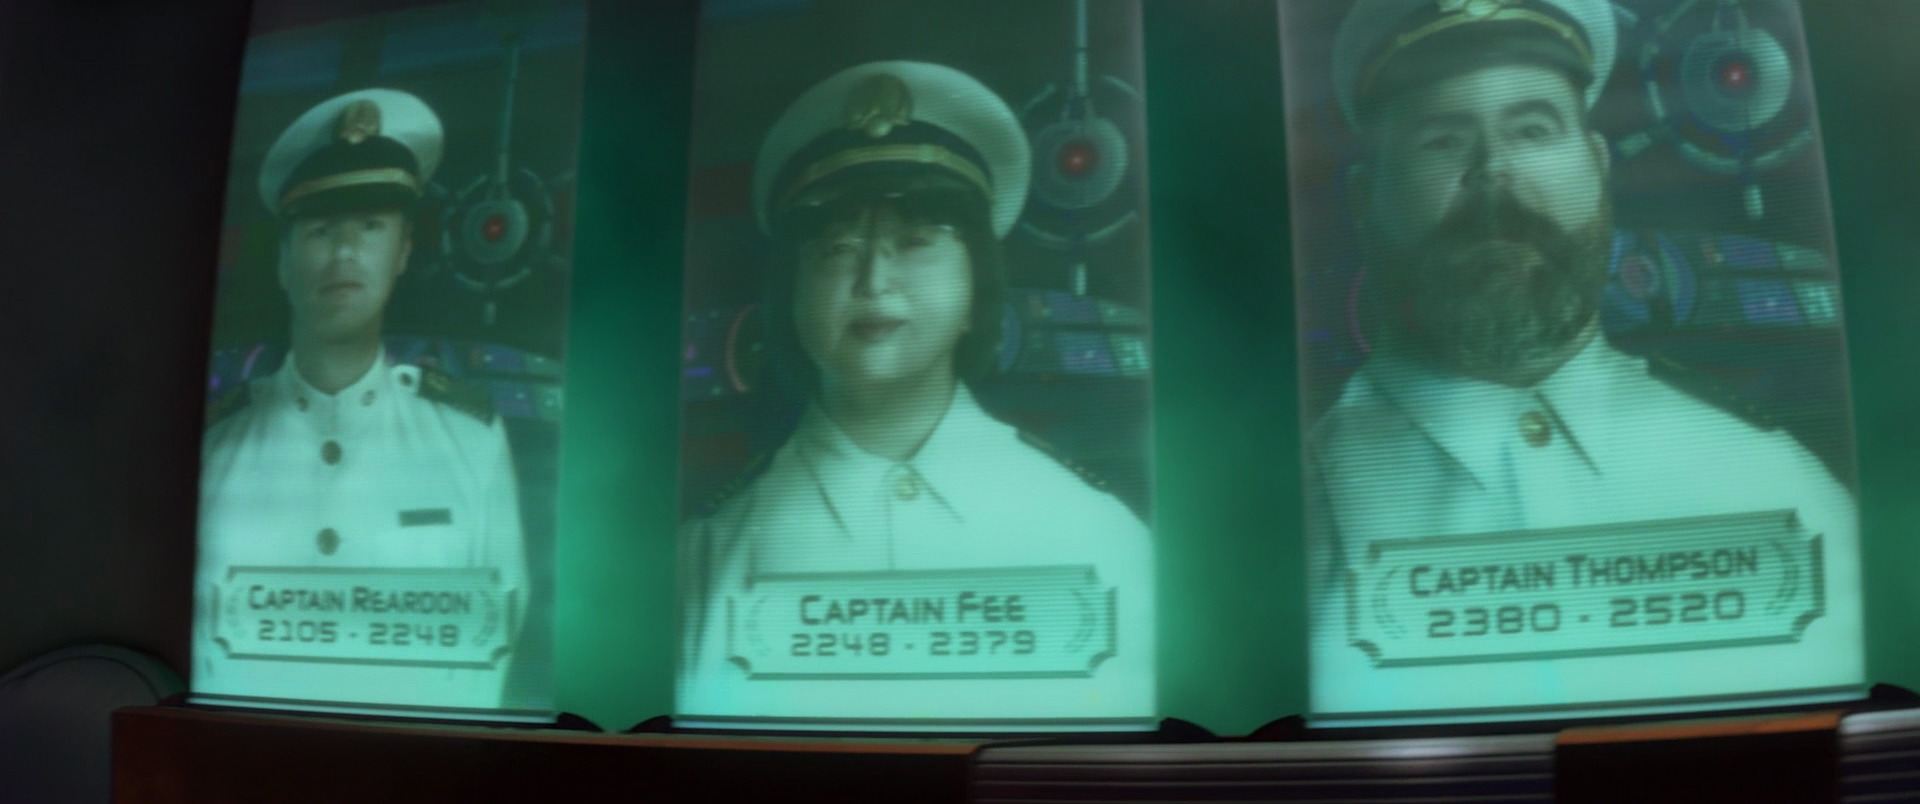 capitaine-fee-personnage-wall-e-01